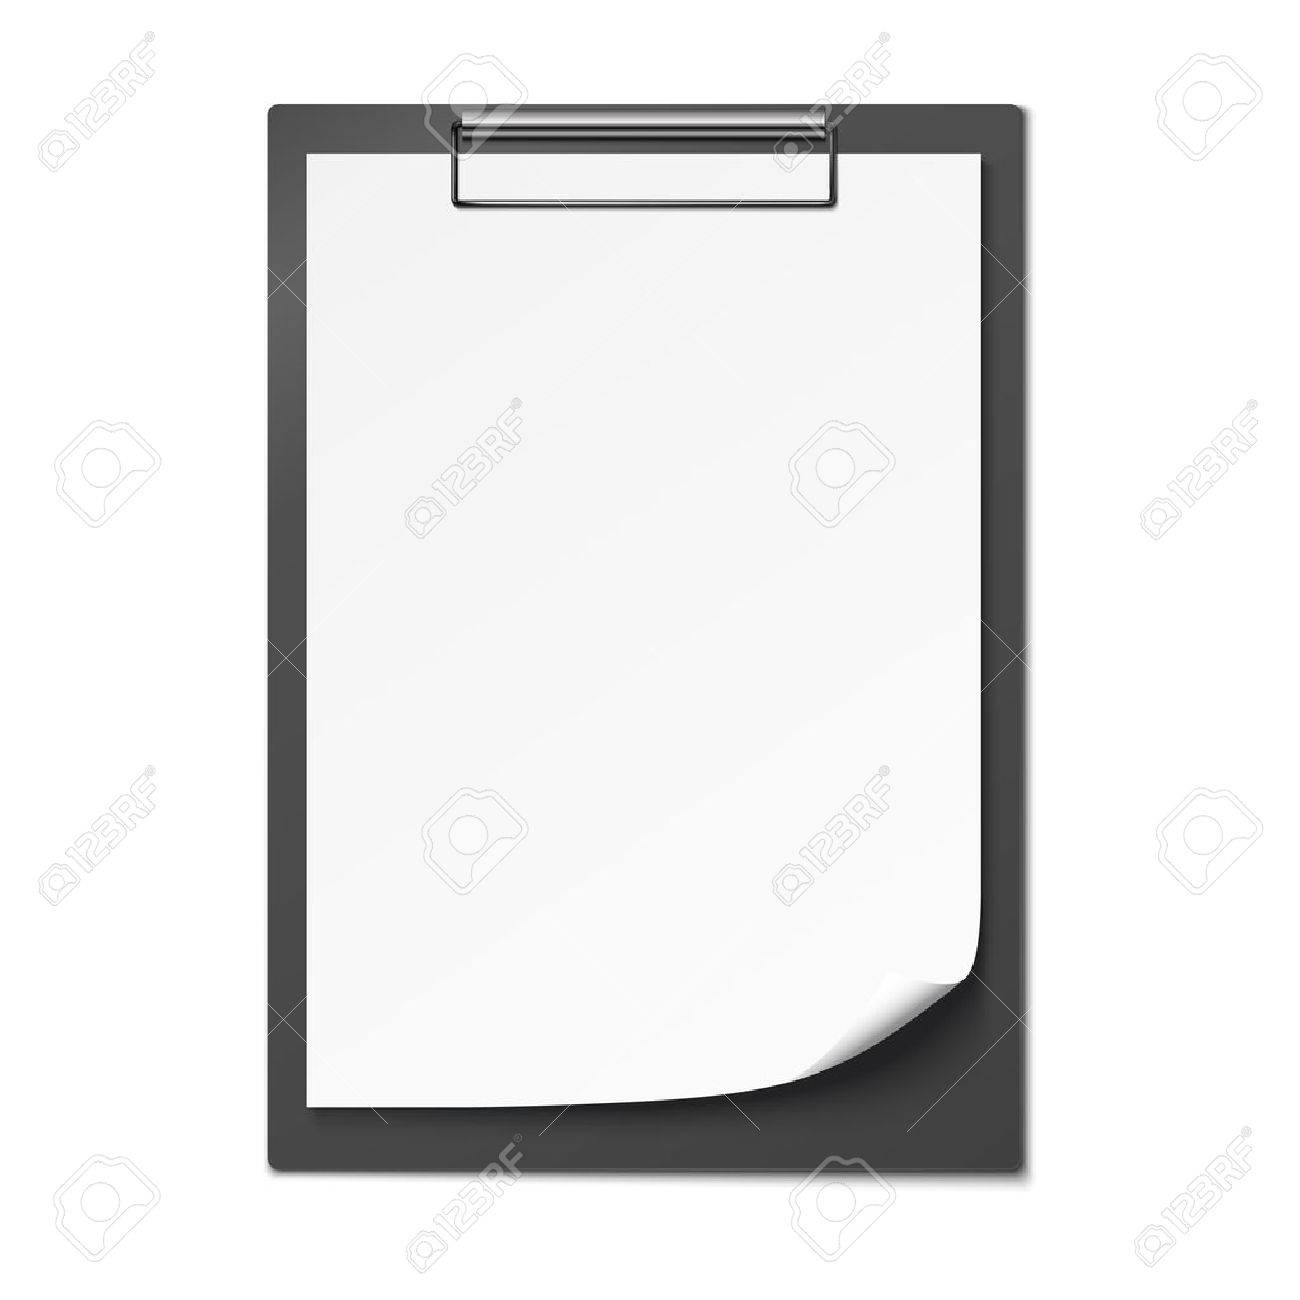 Clipboard with blank paper isolated on white background. Vector illustration - 55754204